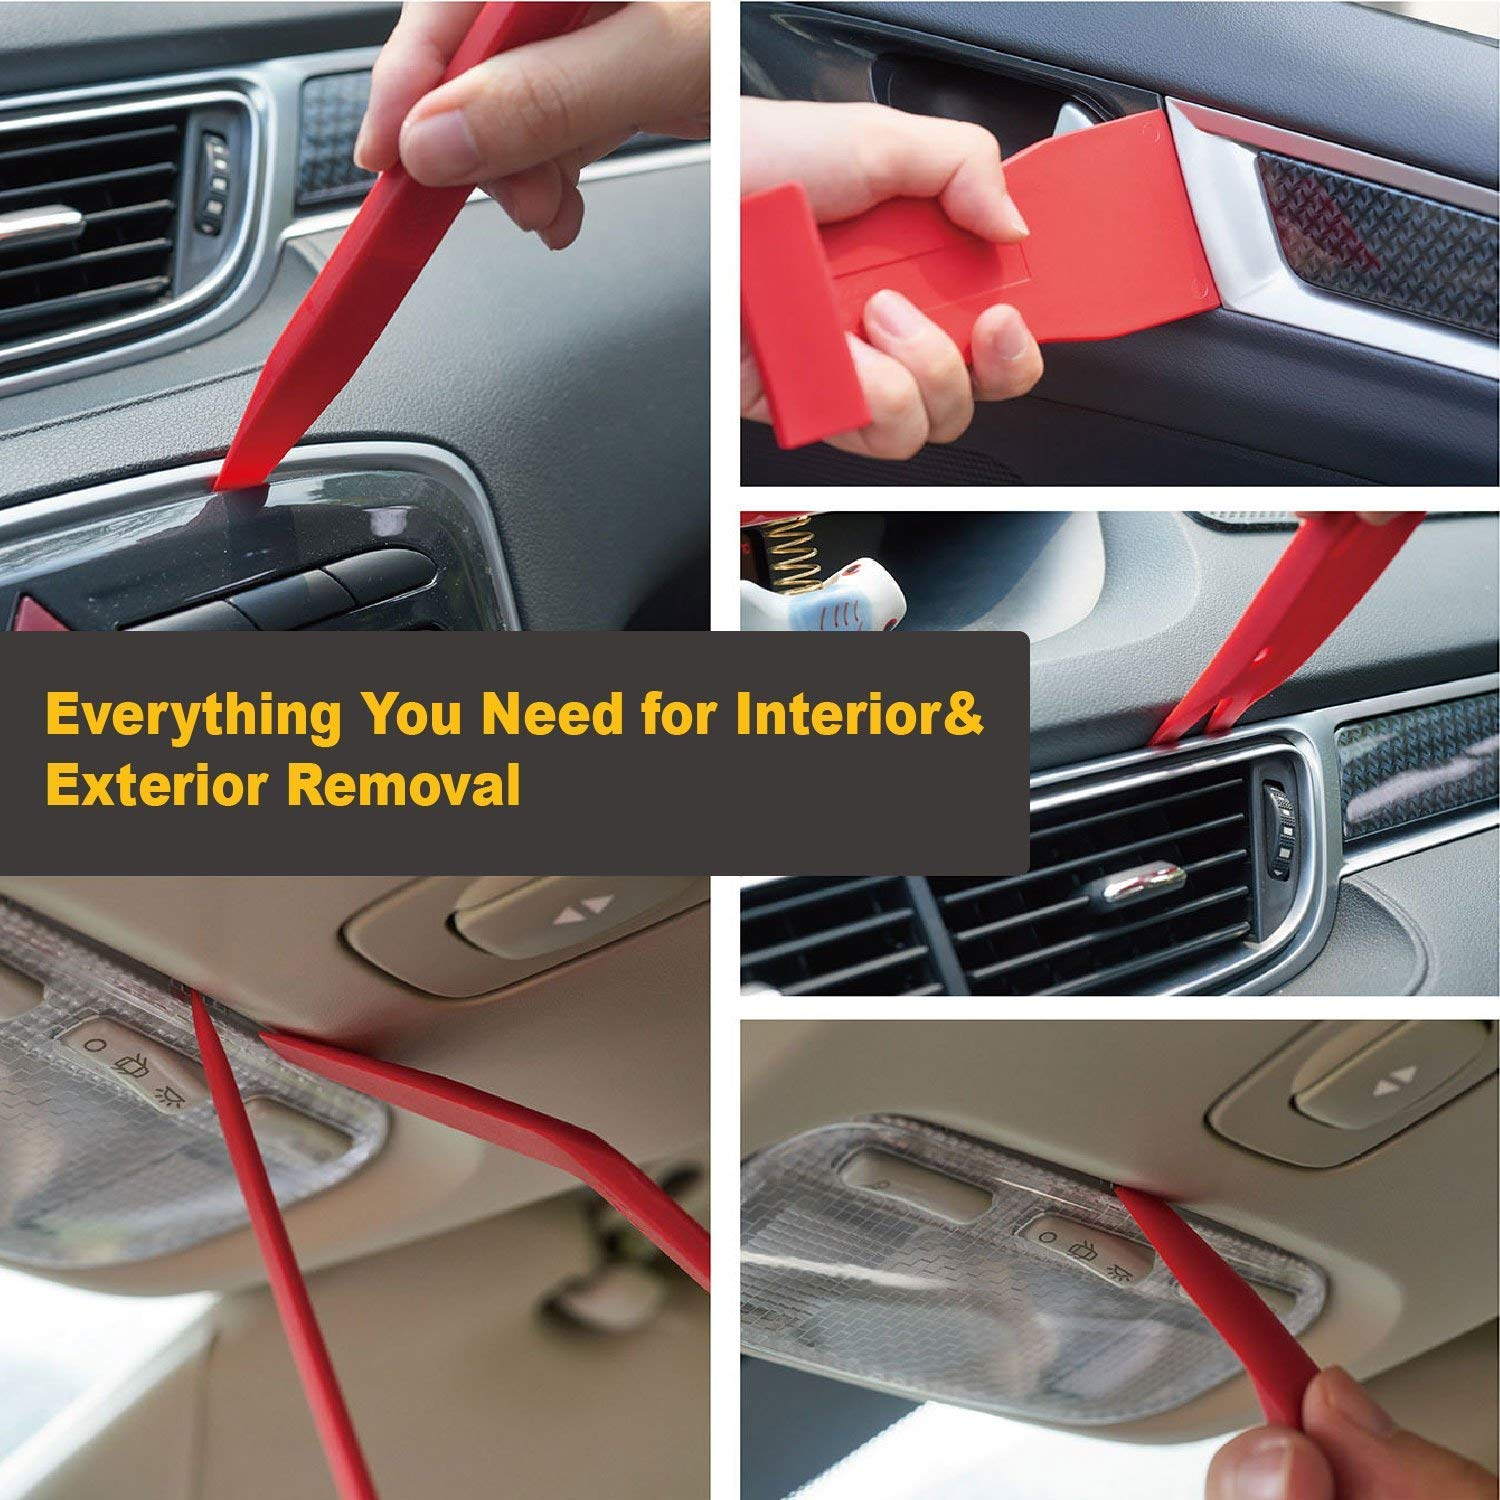 139pcs Car Trim Removal Tool with Car Retainer Clips Auto Door Panel Removal Tool Set with Clip Plier Set and Fastener Remover 139 pcs